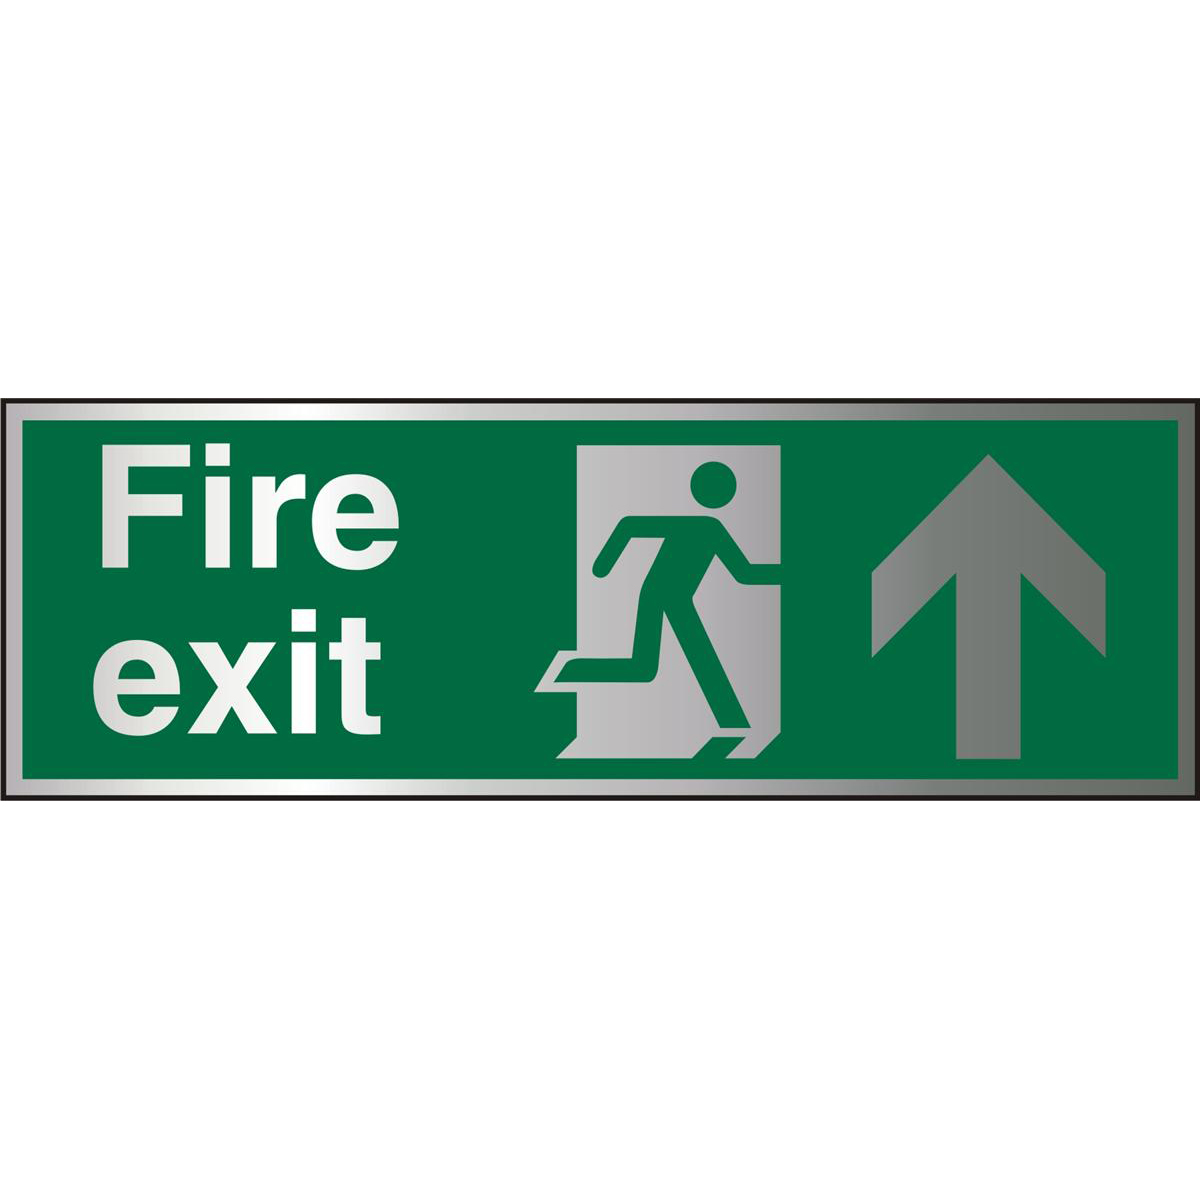 Brushed Alu Sign 1.5mm S/A FireExit Man Run Rght&Arrw Up Ref BASP129Up to 10 Day Leadtime